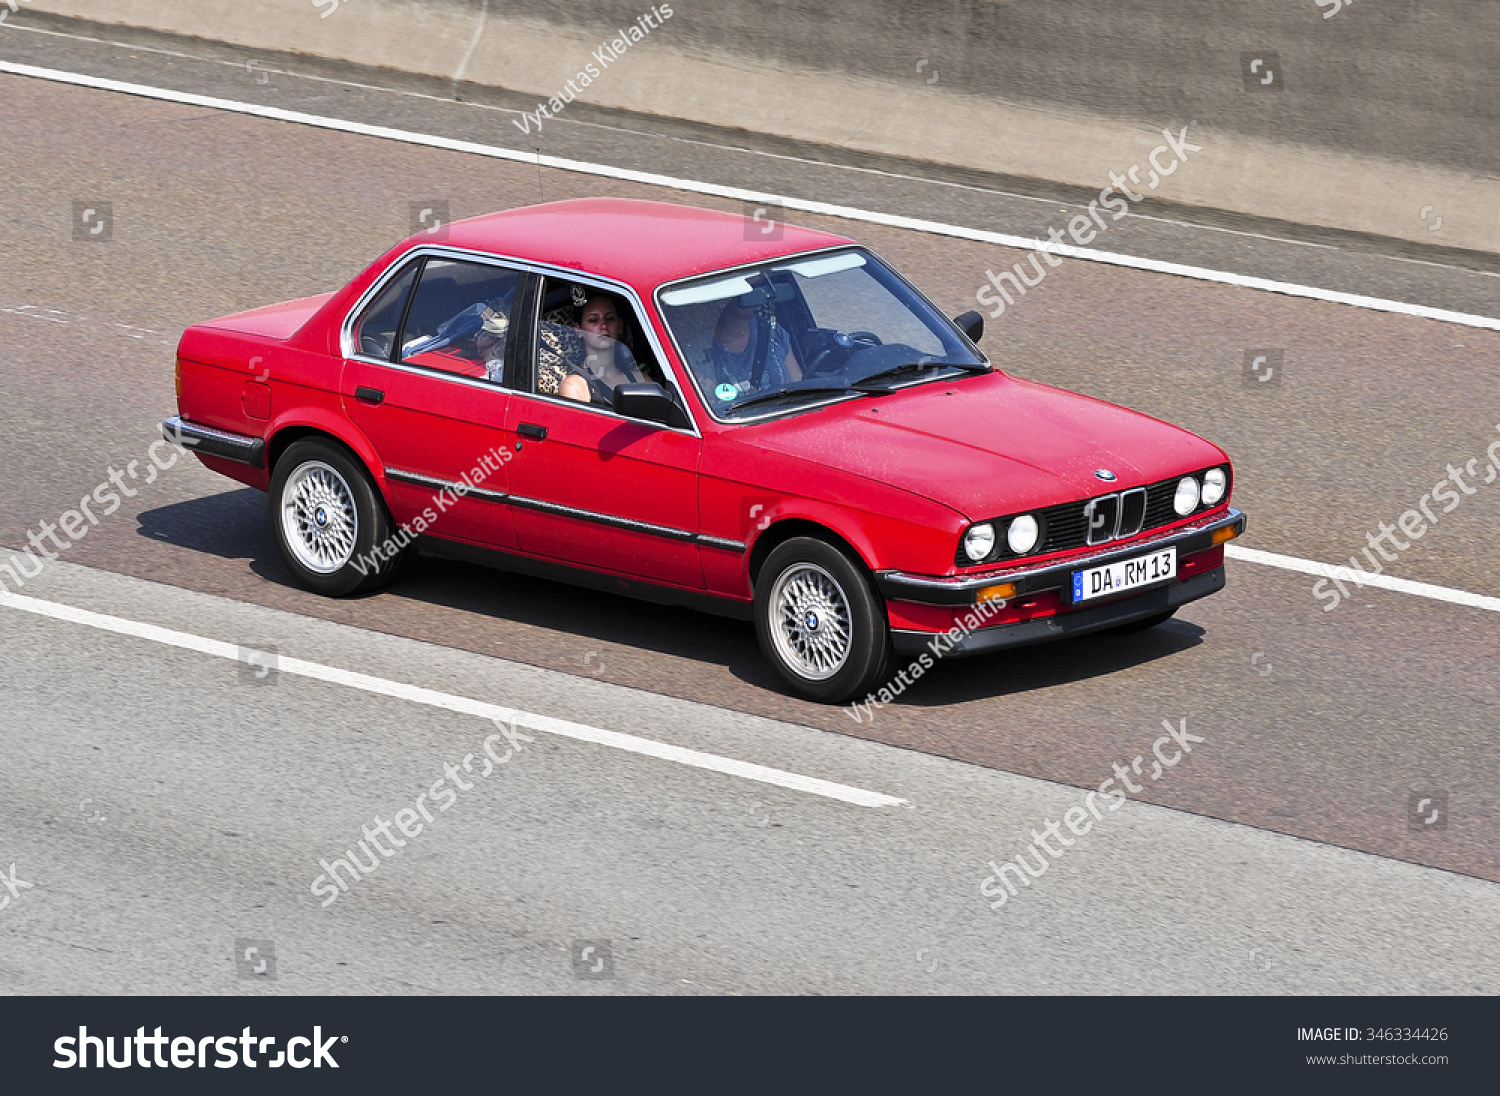 Frankfurtgermany Aug 10 Old Red Bmw Stock Photo Edit Now 346334426